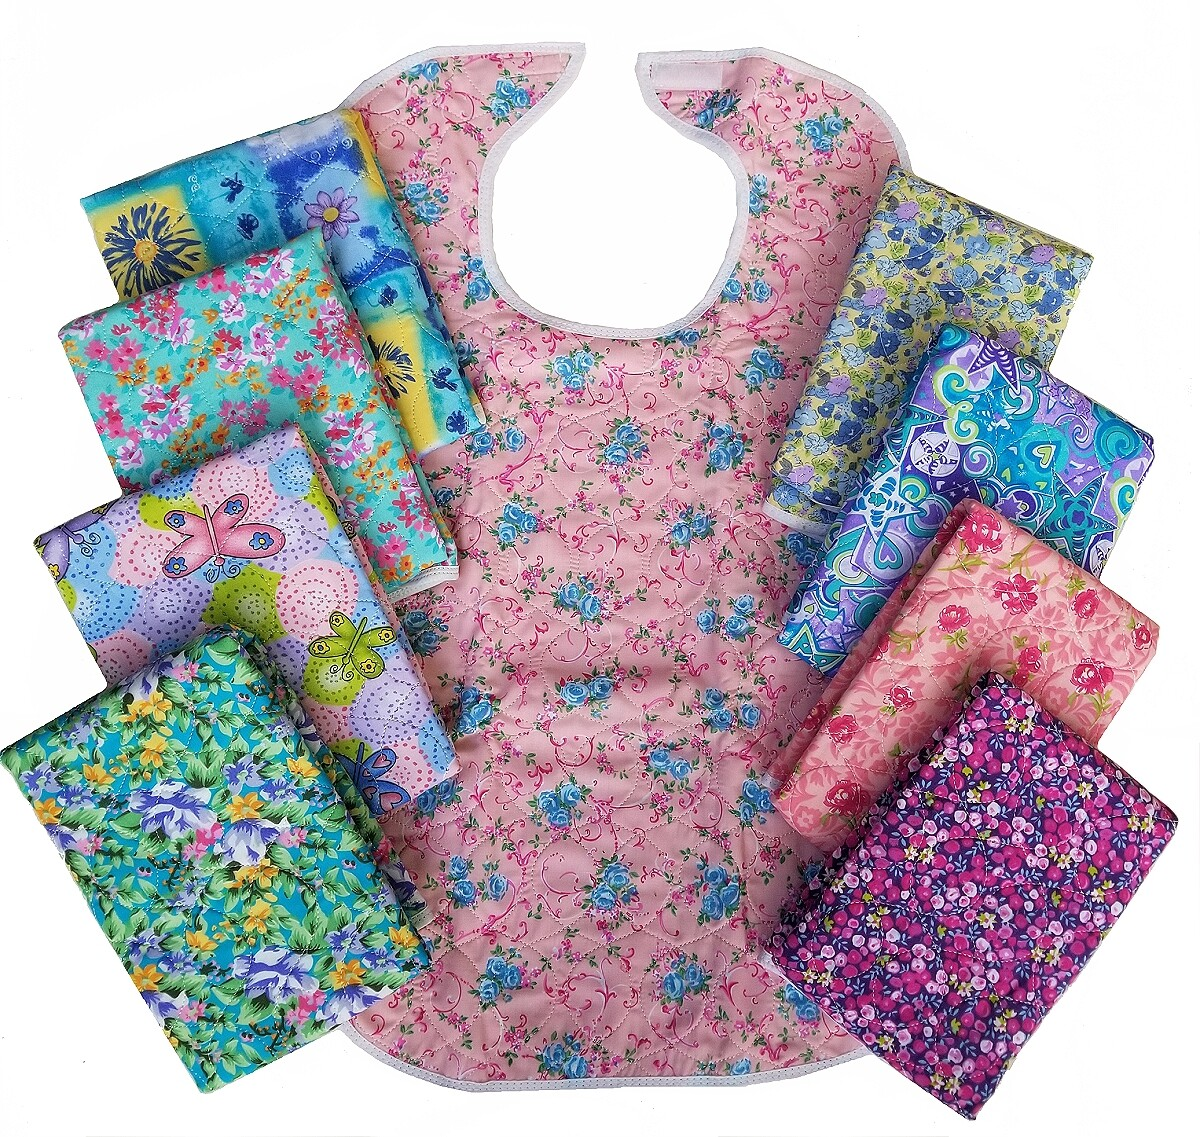 floral adult bibs and clothing protectors